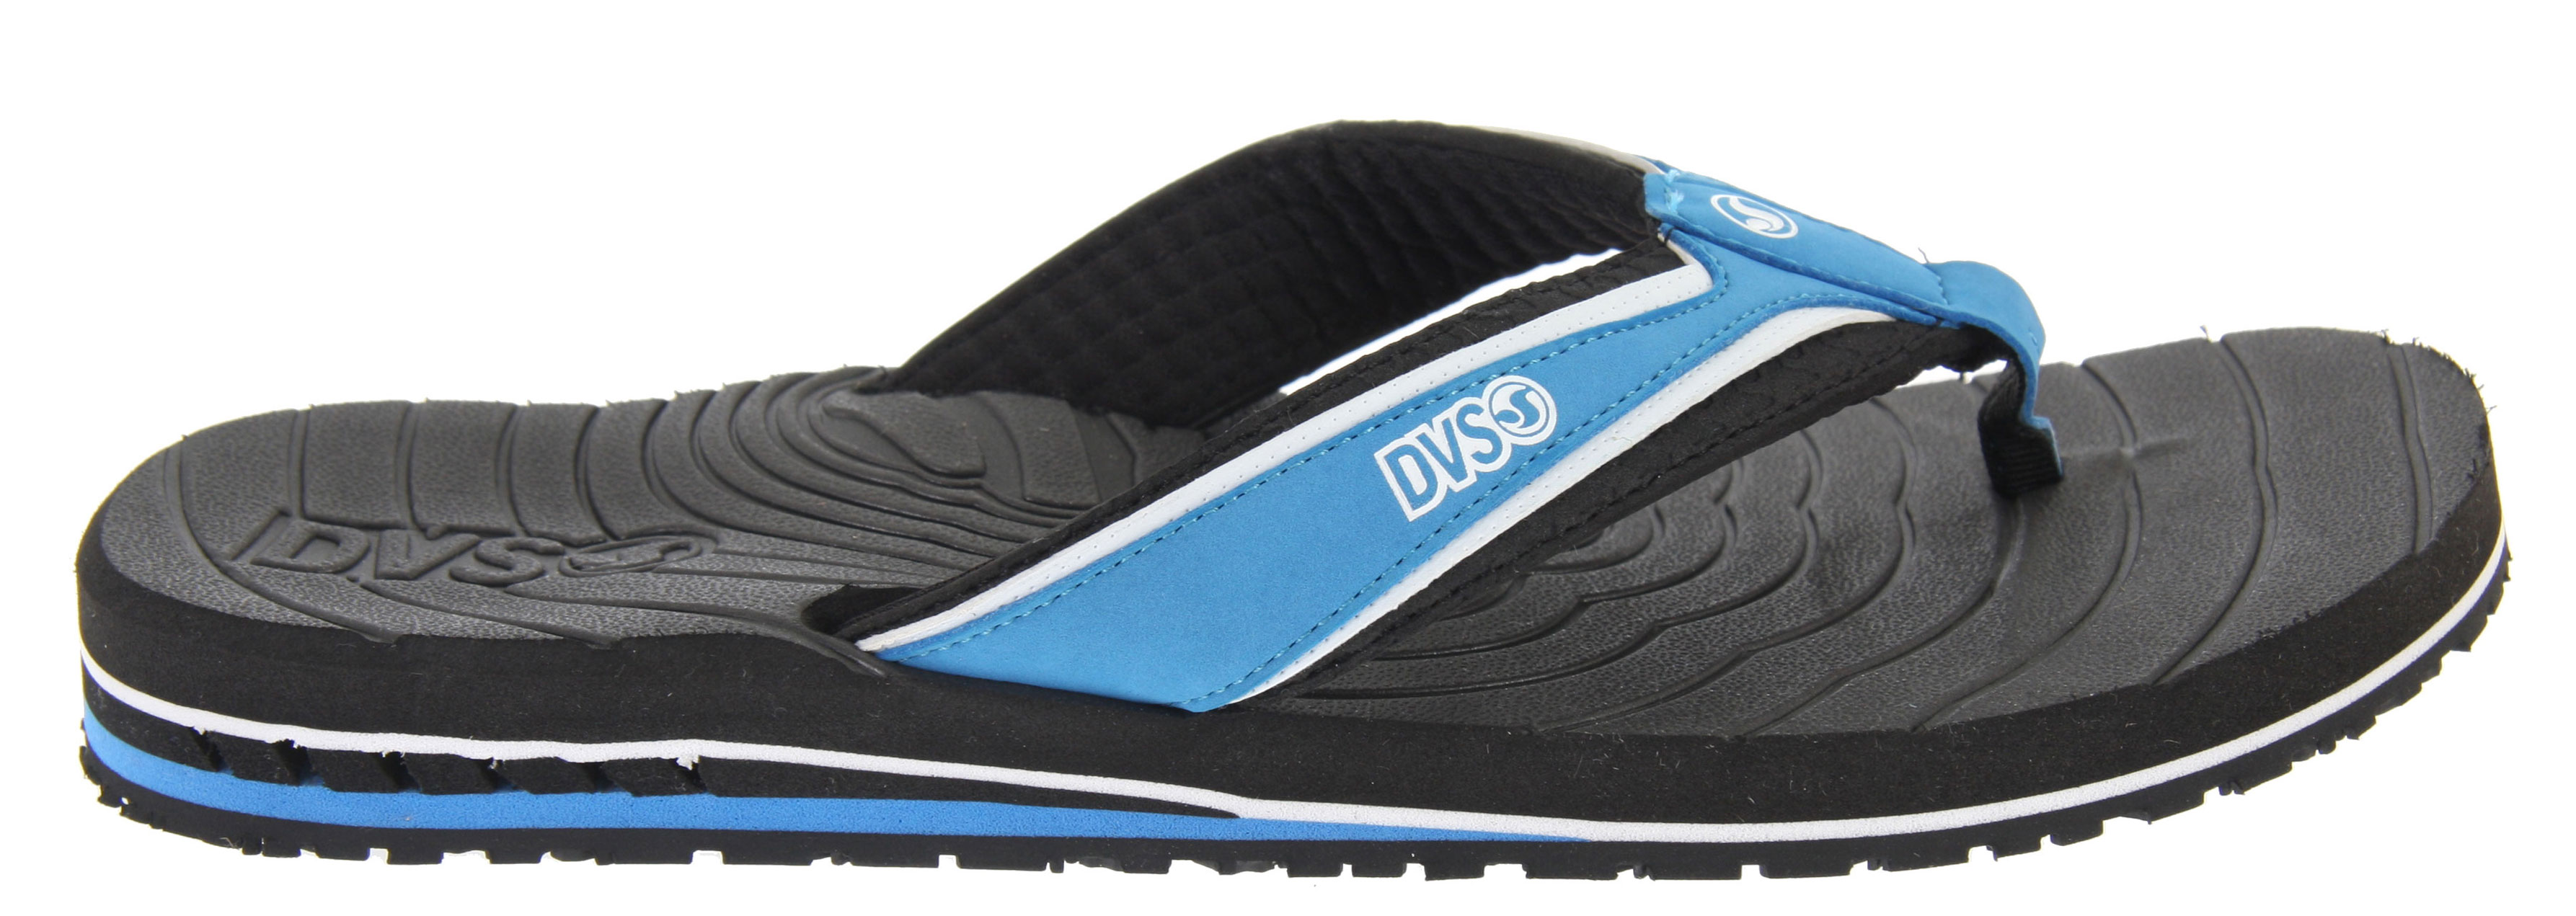 Surf Key Features of the DVS Jordy 2 Sandals: Custom molded lycra strap lining for grip and airation Synthetic nubuck leather upper overlaying a debossed Africa continent patterned soft EVA strap Custom contoured and molded EVA footbed with storm drain, swell model channels and anatomically correct arch support DVS Bruise Control EVA heel wedge with angled flex grooves Custom molded Africa continent patterned, sure grip rubber outsole - $18.95